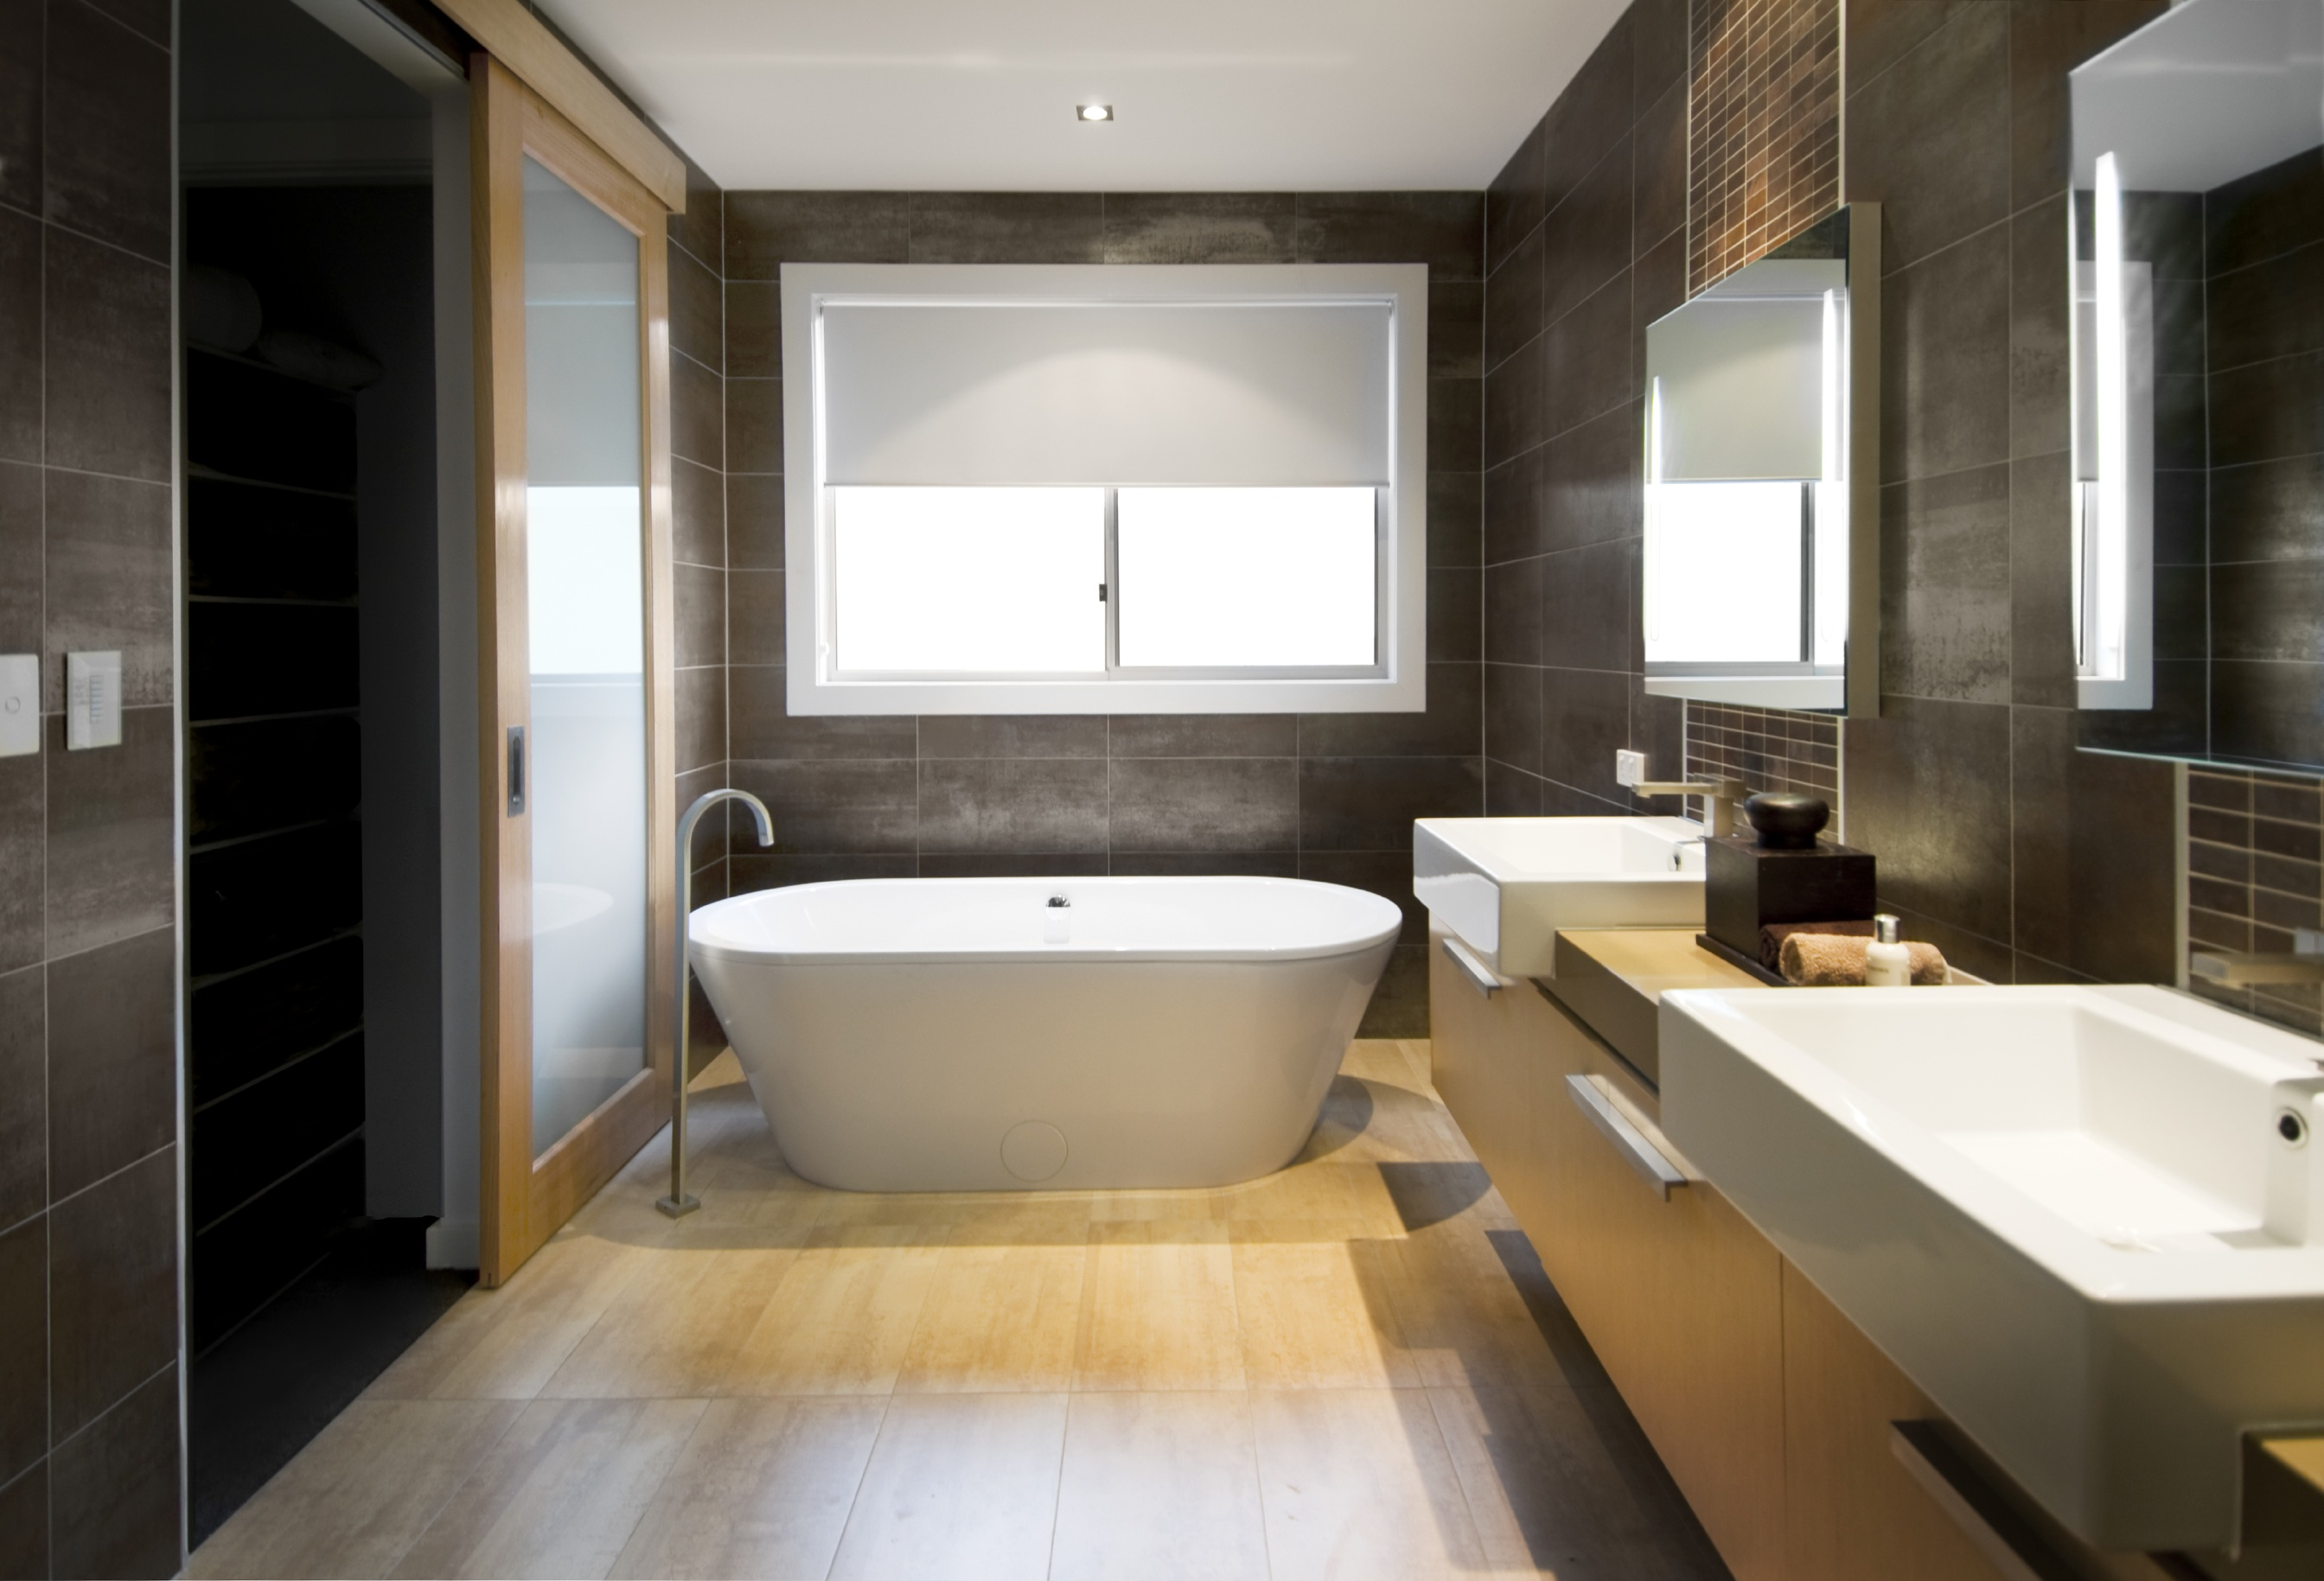 Luxury Tubs for your Master Bathroom - City Renovations